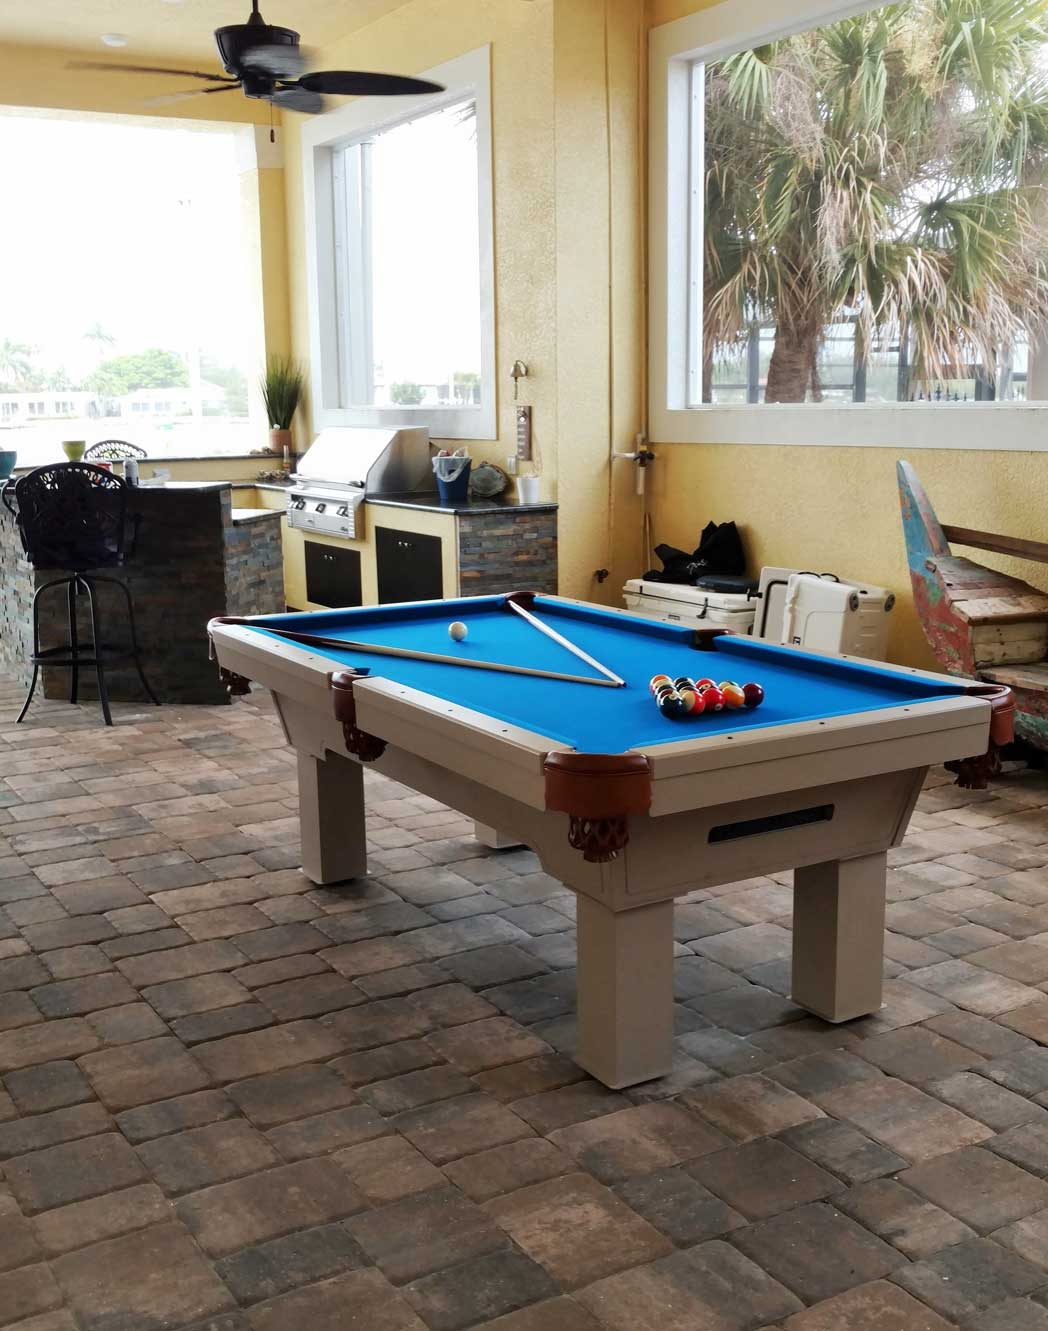 The Caesar, custom outdoor pool table, is the focal point of client's outdoor living space in Florida